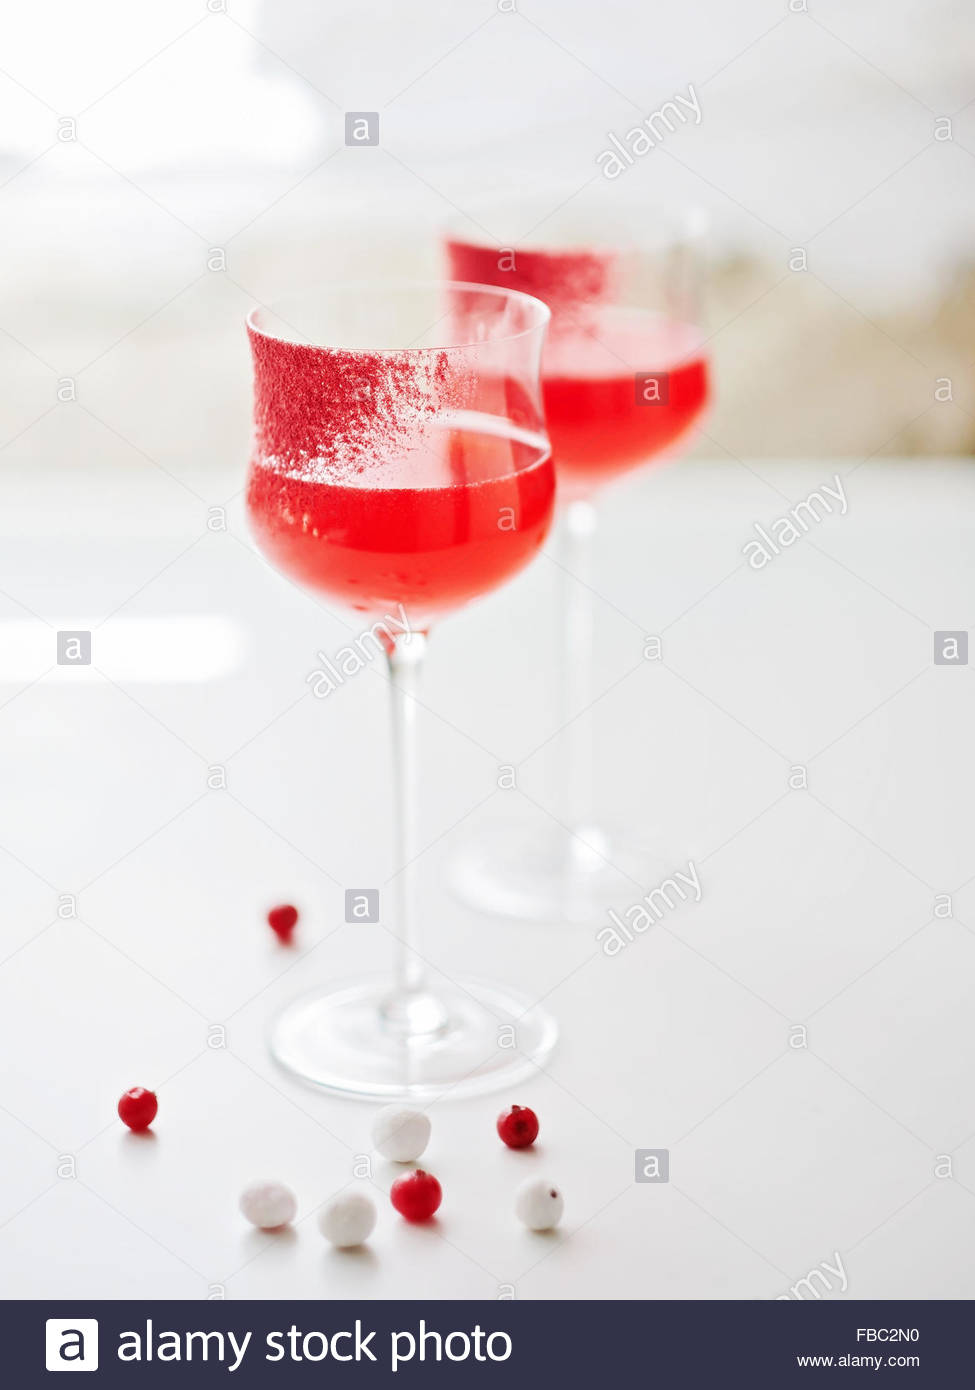 Cocktail served in a cranberry-rimmed glass - Stock Image